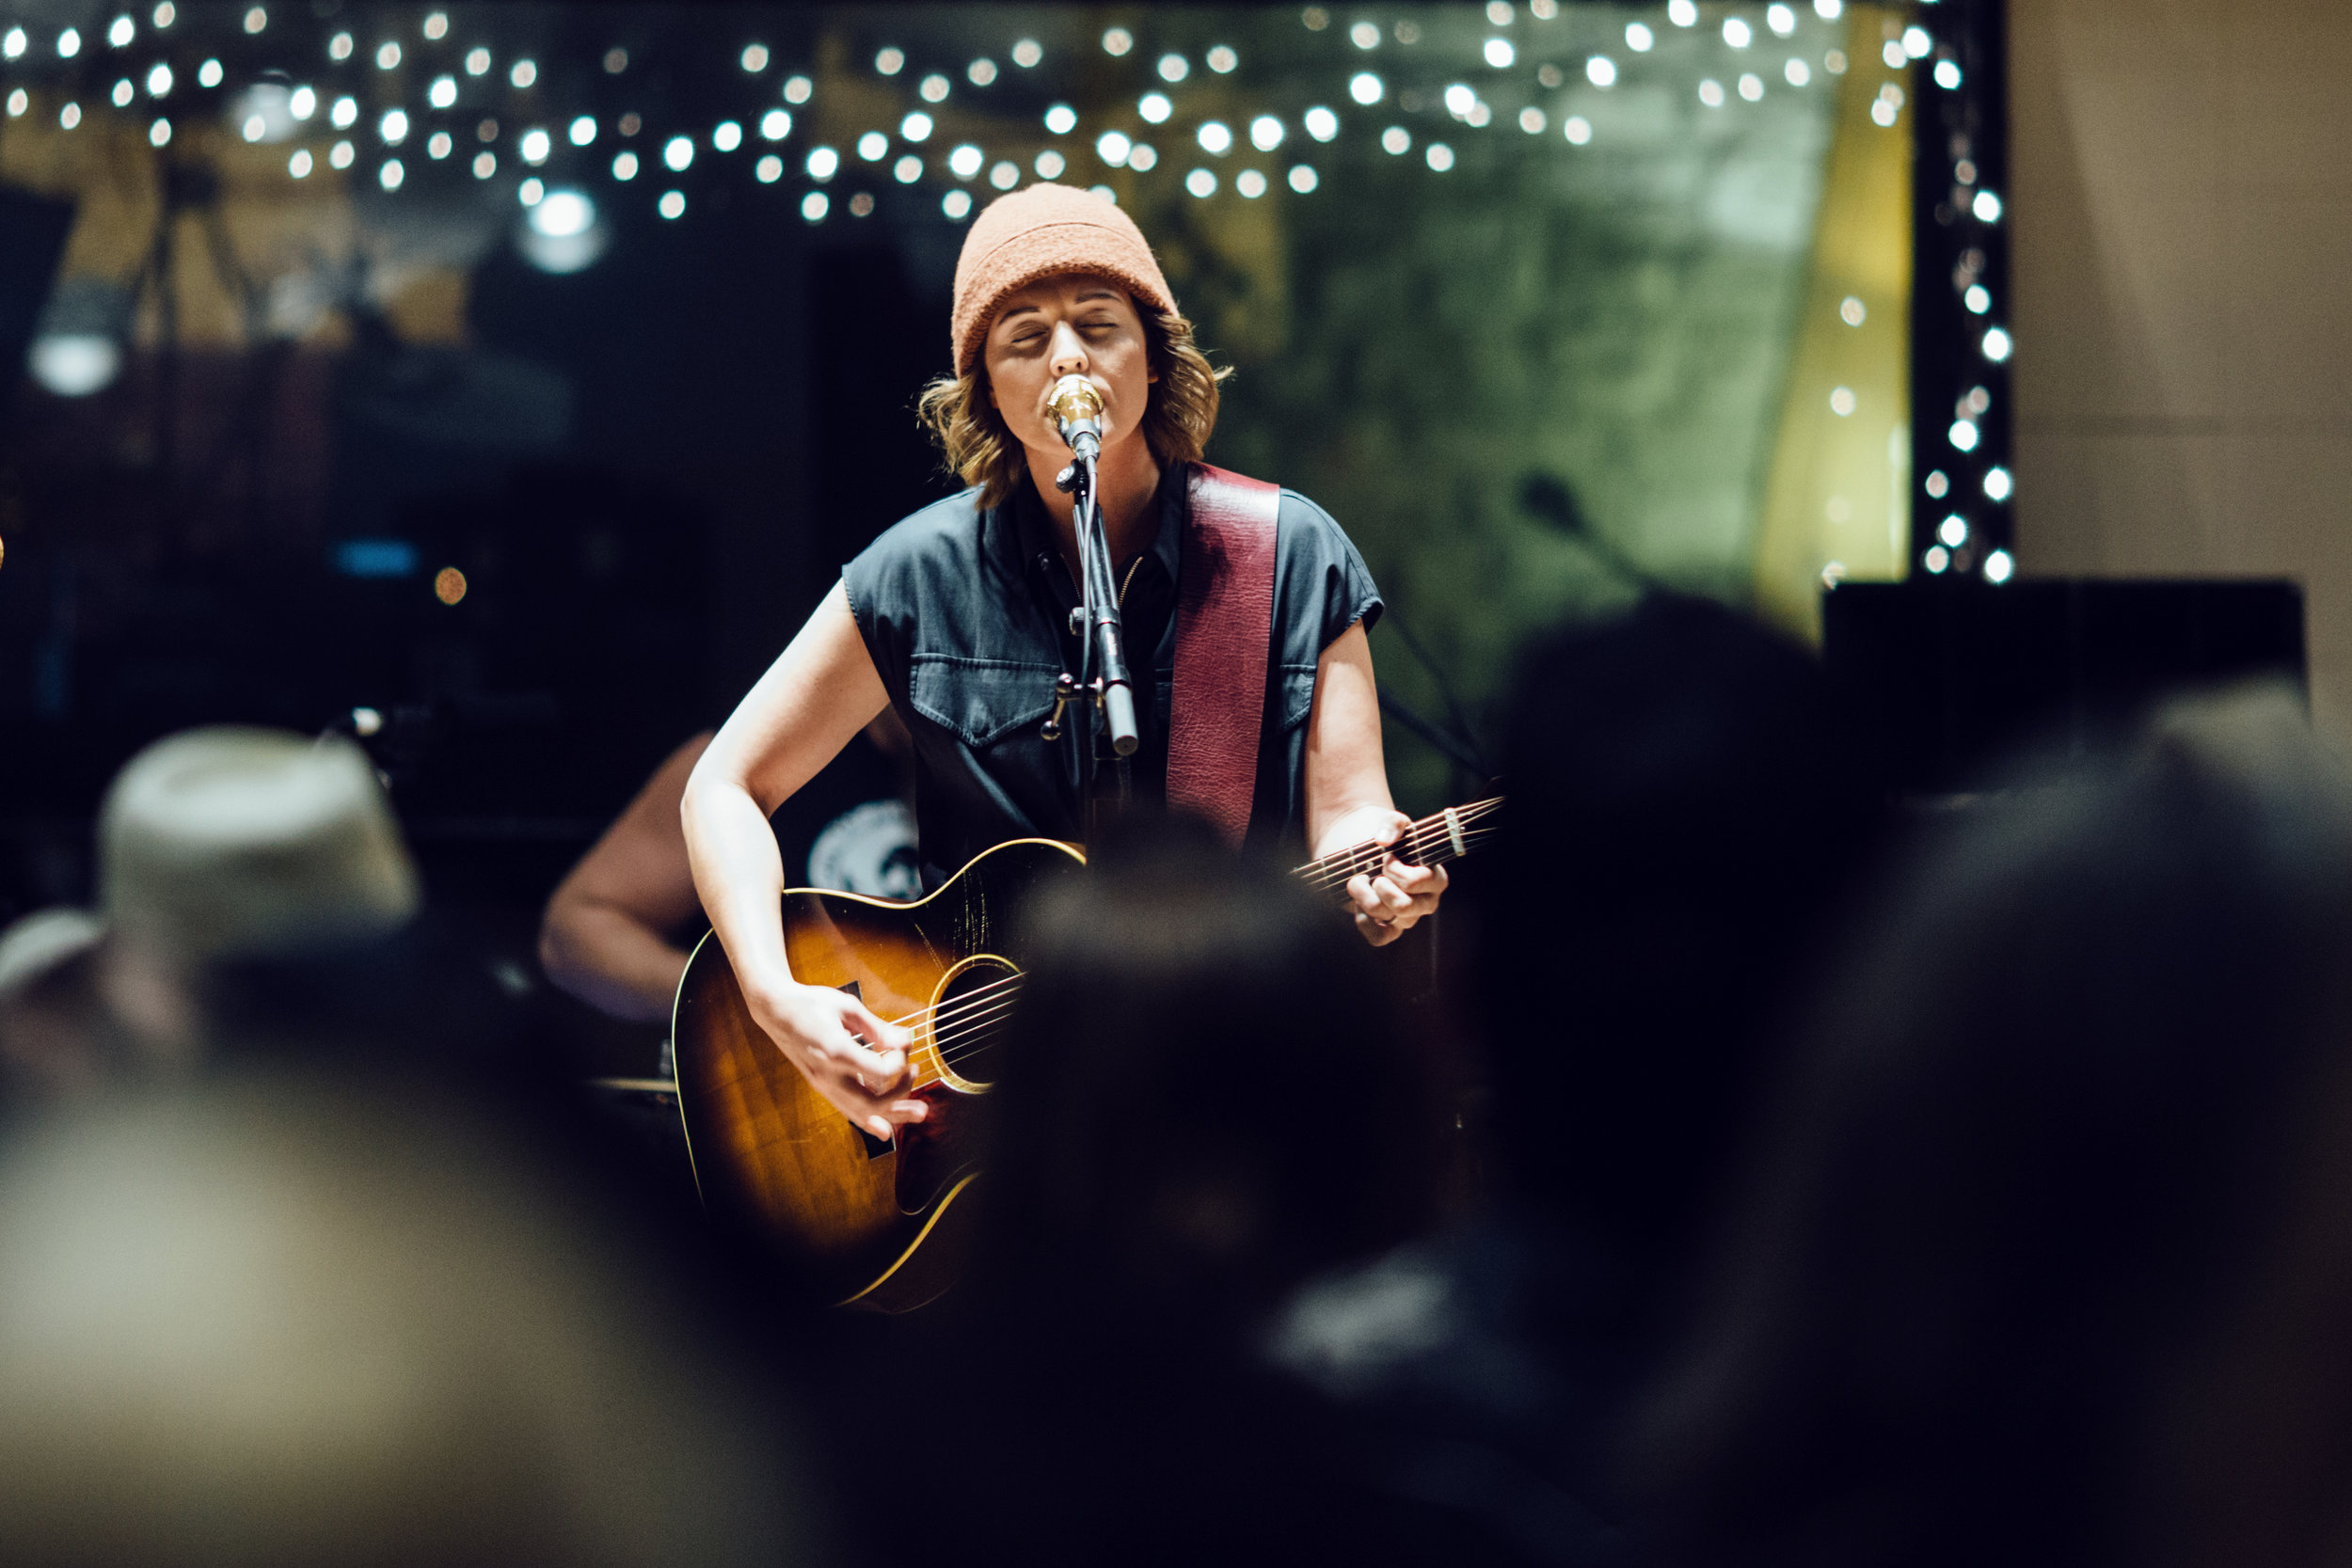 {Brandi Carlile}8-{Connelly Crowe}.jpg